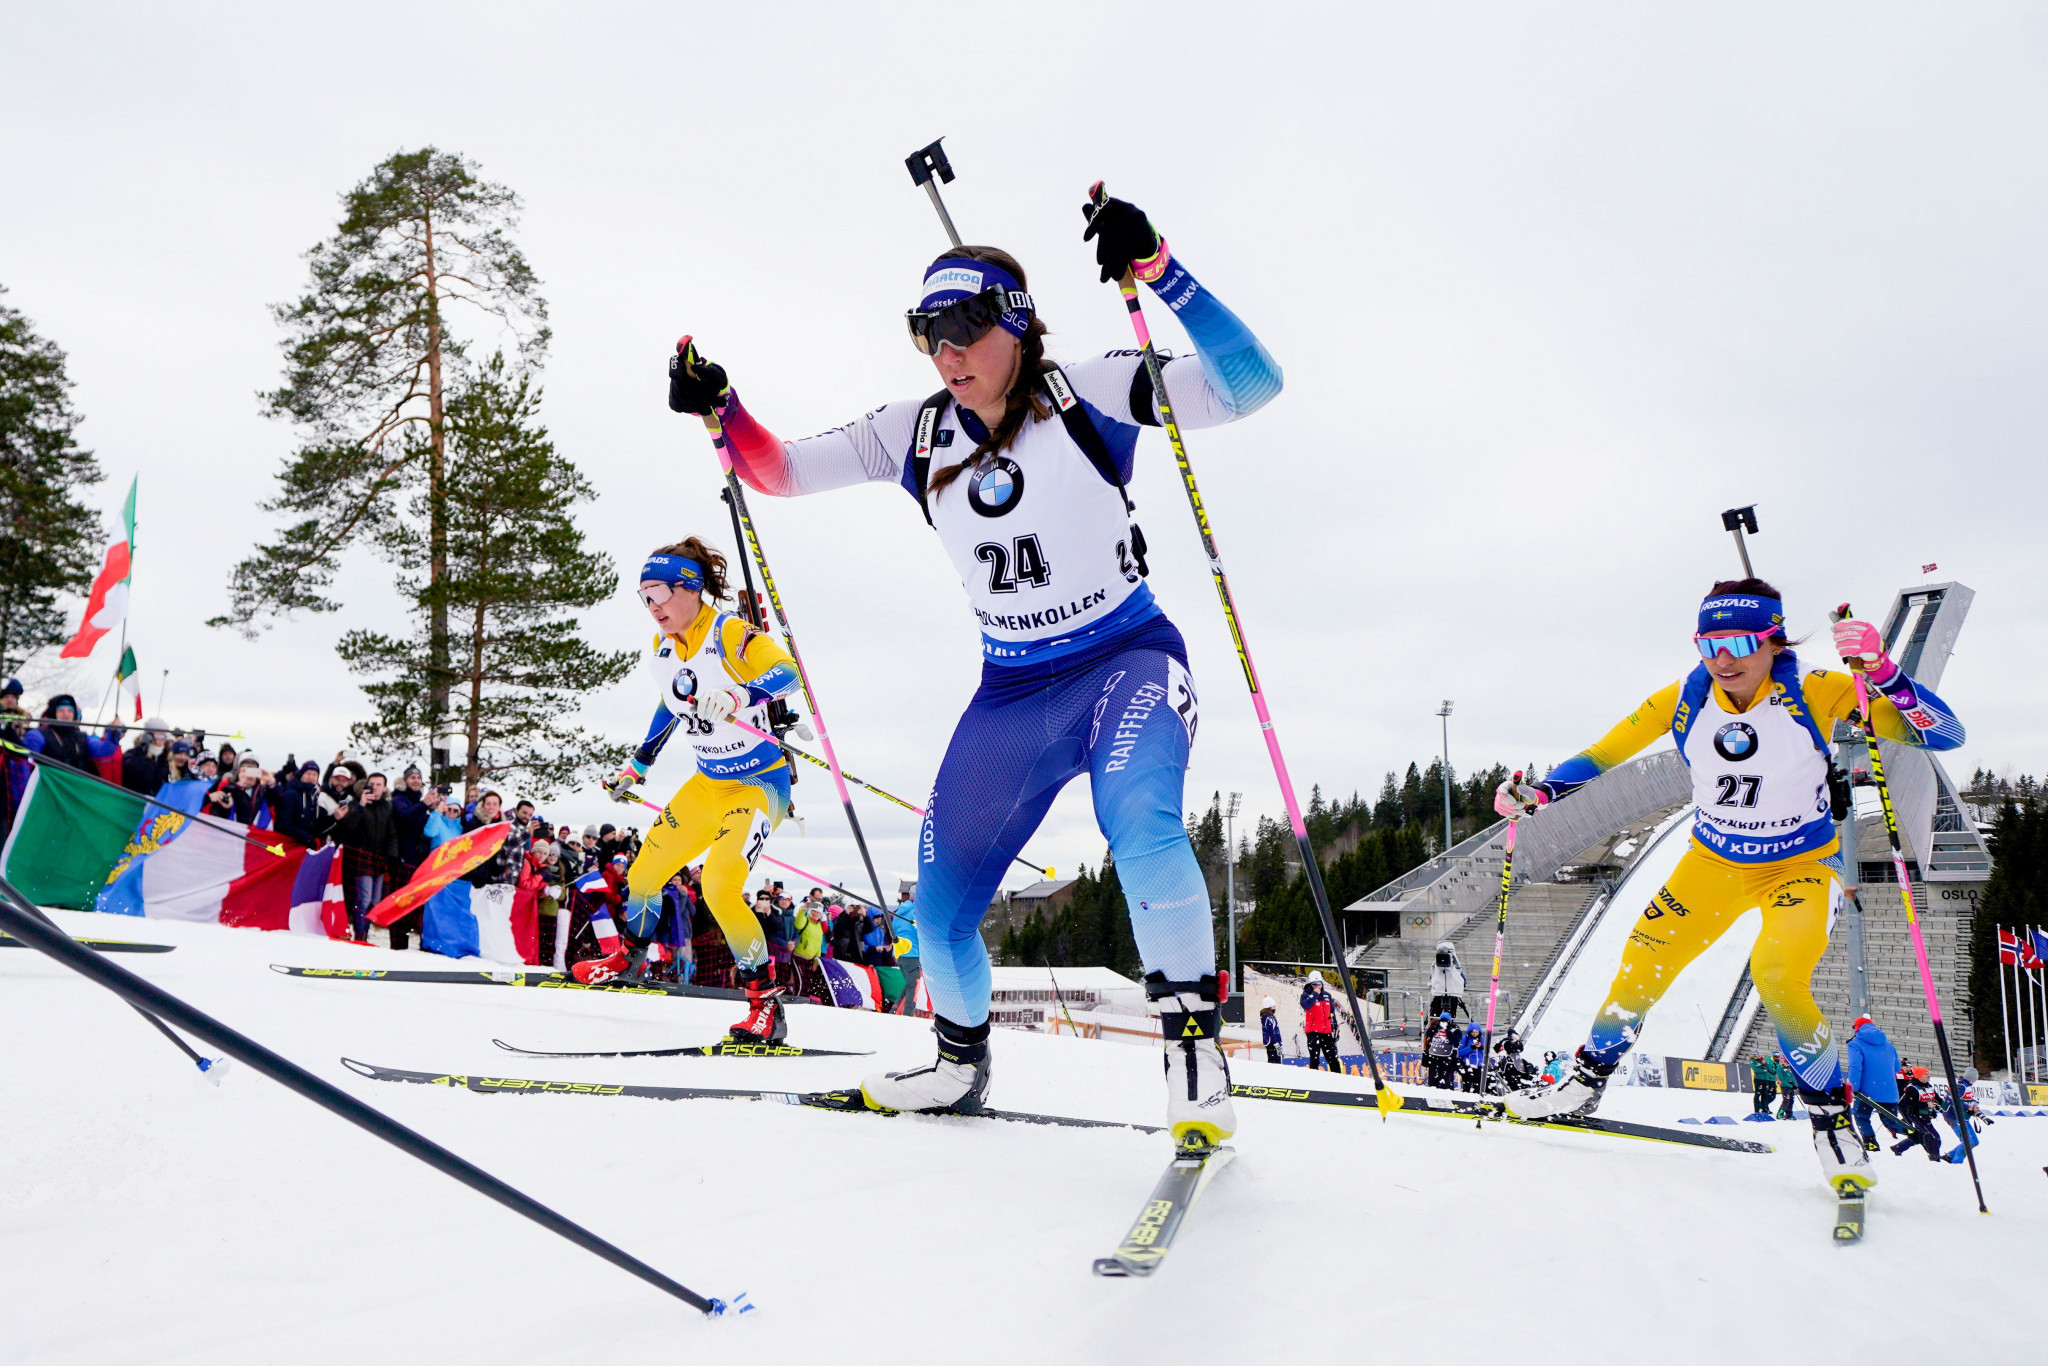 Biathlon At The 2020 Olympic Winter Games.International Biathlon Union Sign Agreement With Olympic Channel